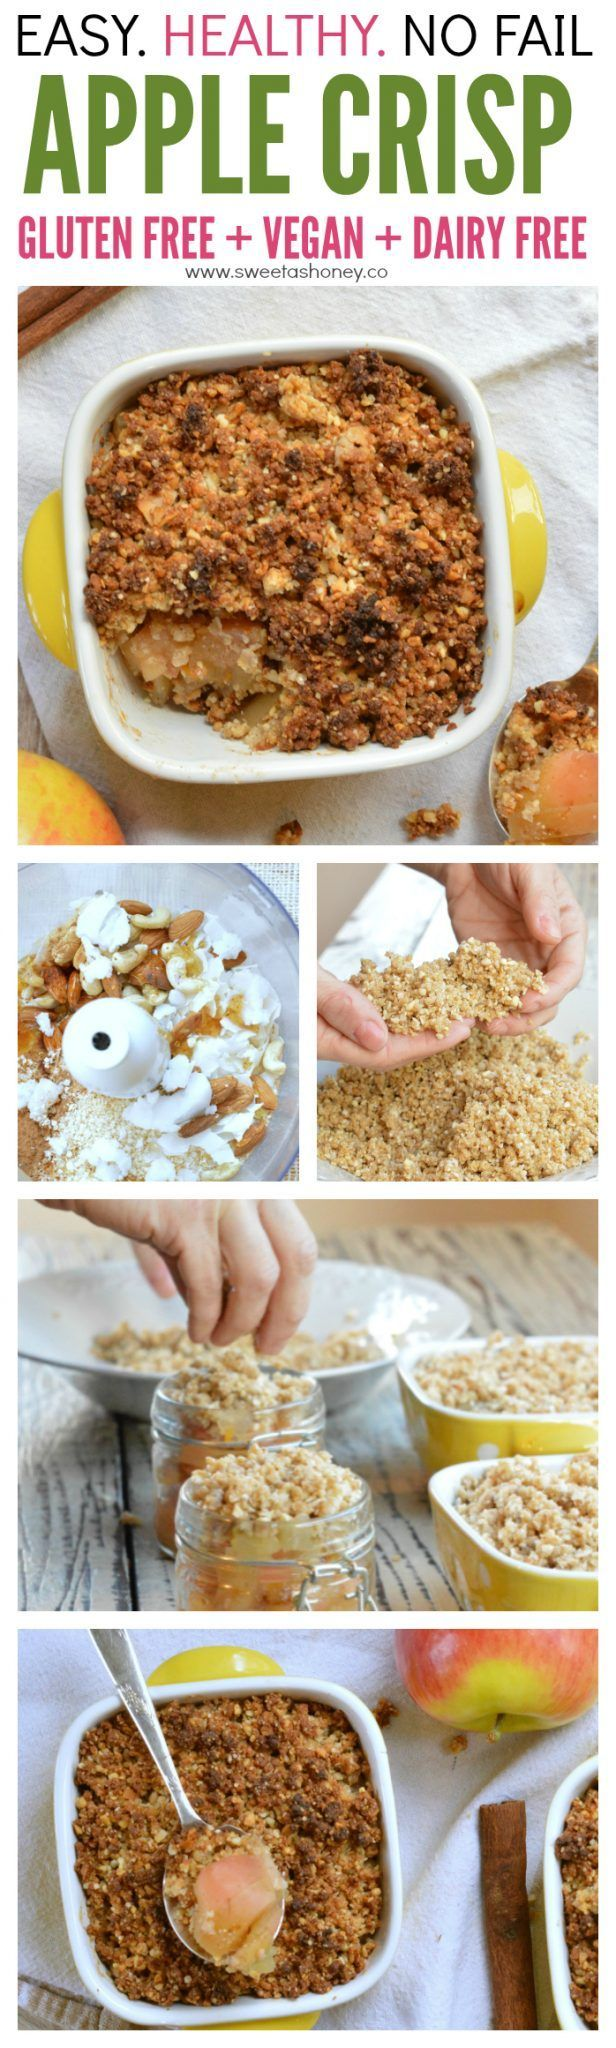 Easy Healthy Gluten free Apple crisp recipe. The best clean apple crumble recipe with an homemade crisp made of coconut oil, nuts, quinoa flakes.